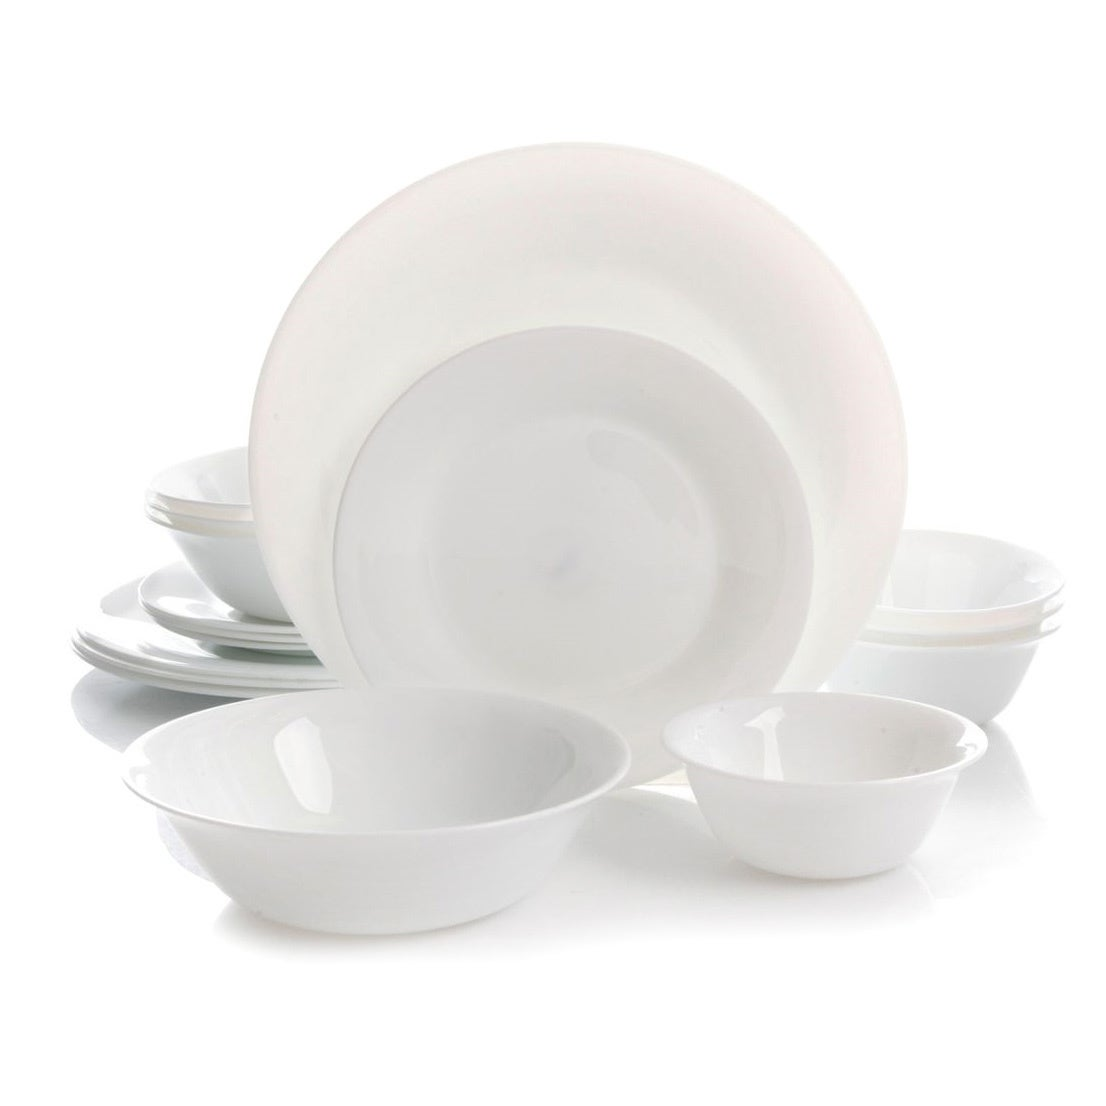 Gibson Oster Della 16pc Double Bowl Dinnerware Set, White...